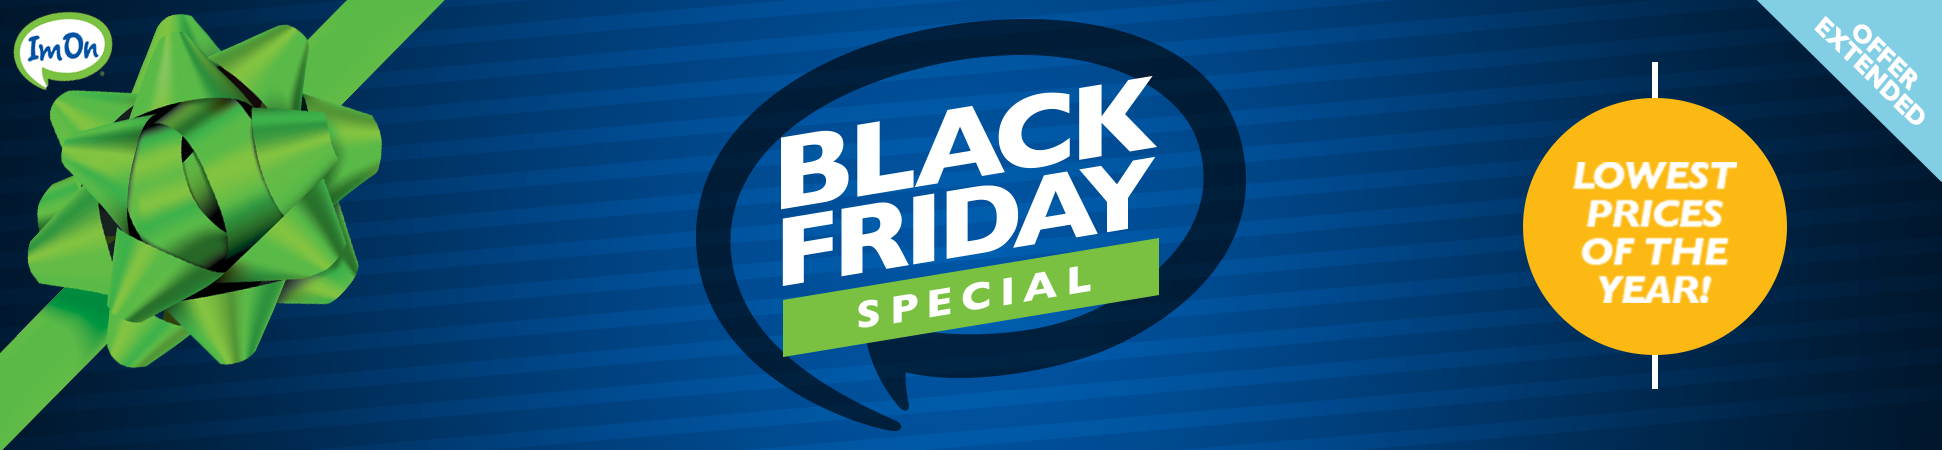 Black-Friday_Landing-page-Banner_Extended-2